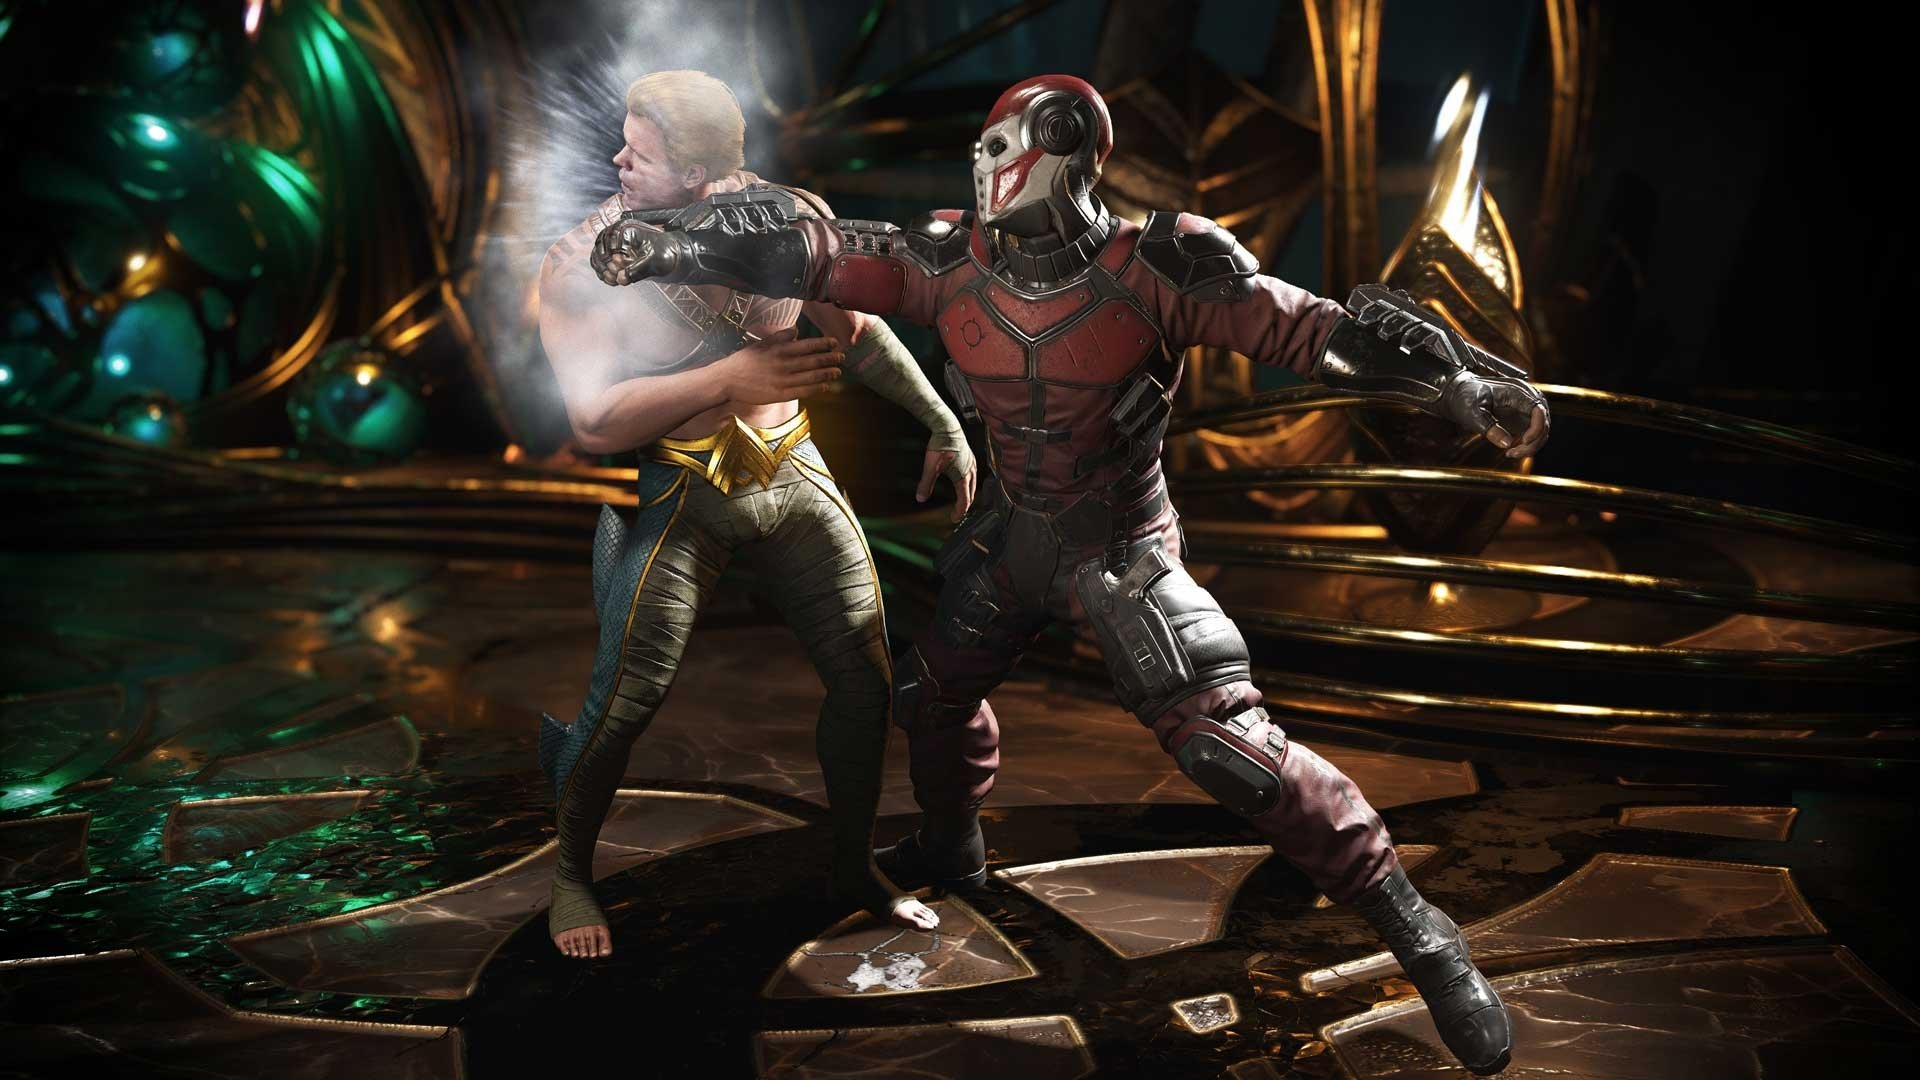 Injustice 2 - Download for PC Free